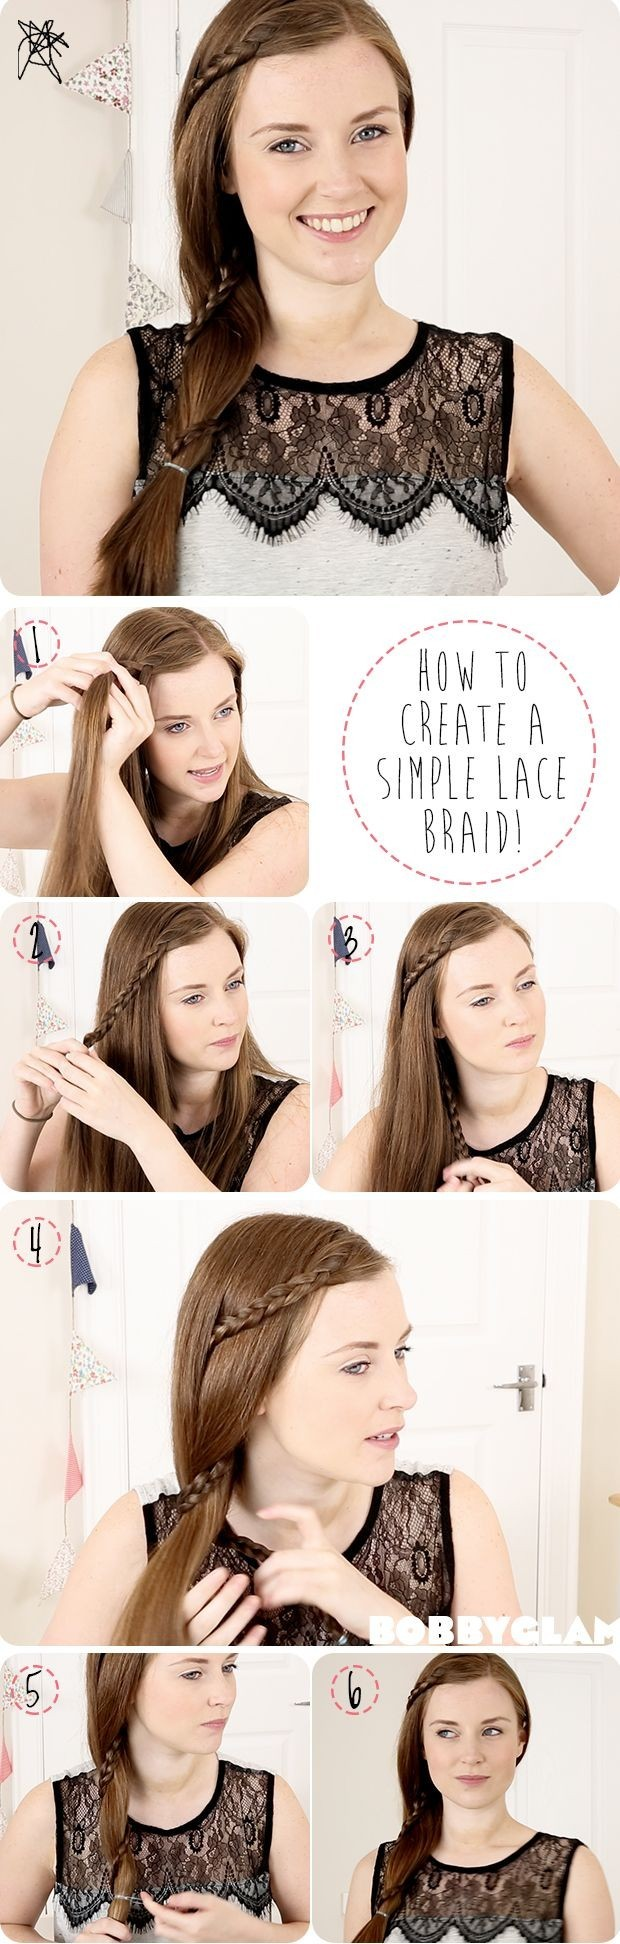 How to Create a Simple Lace Braid: Braid Hair Tutorial